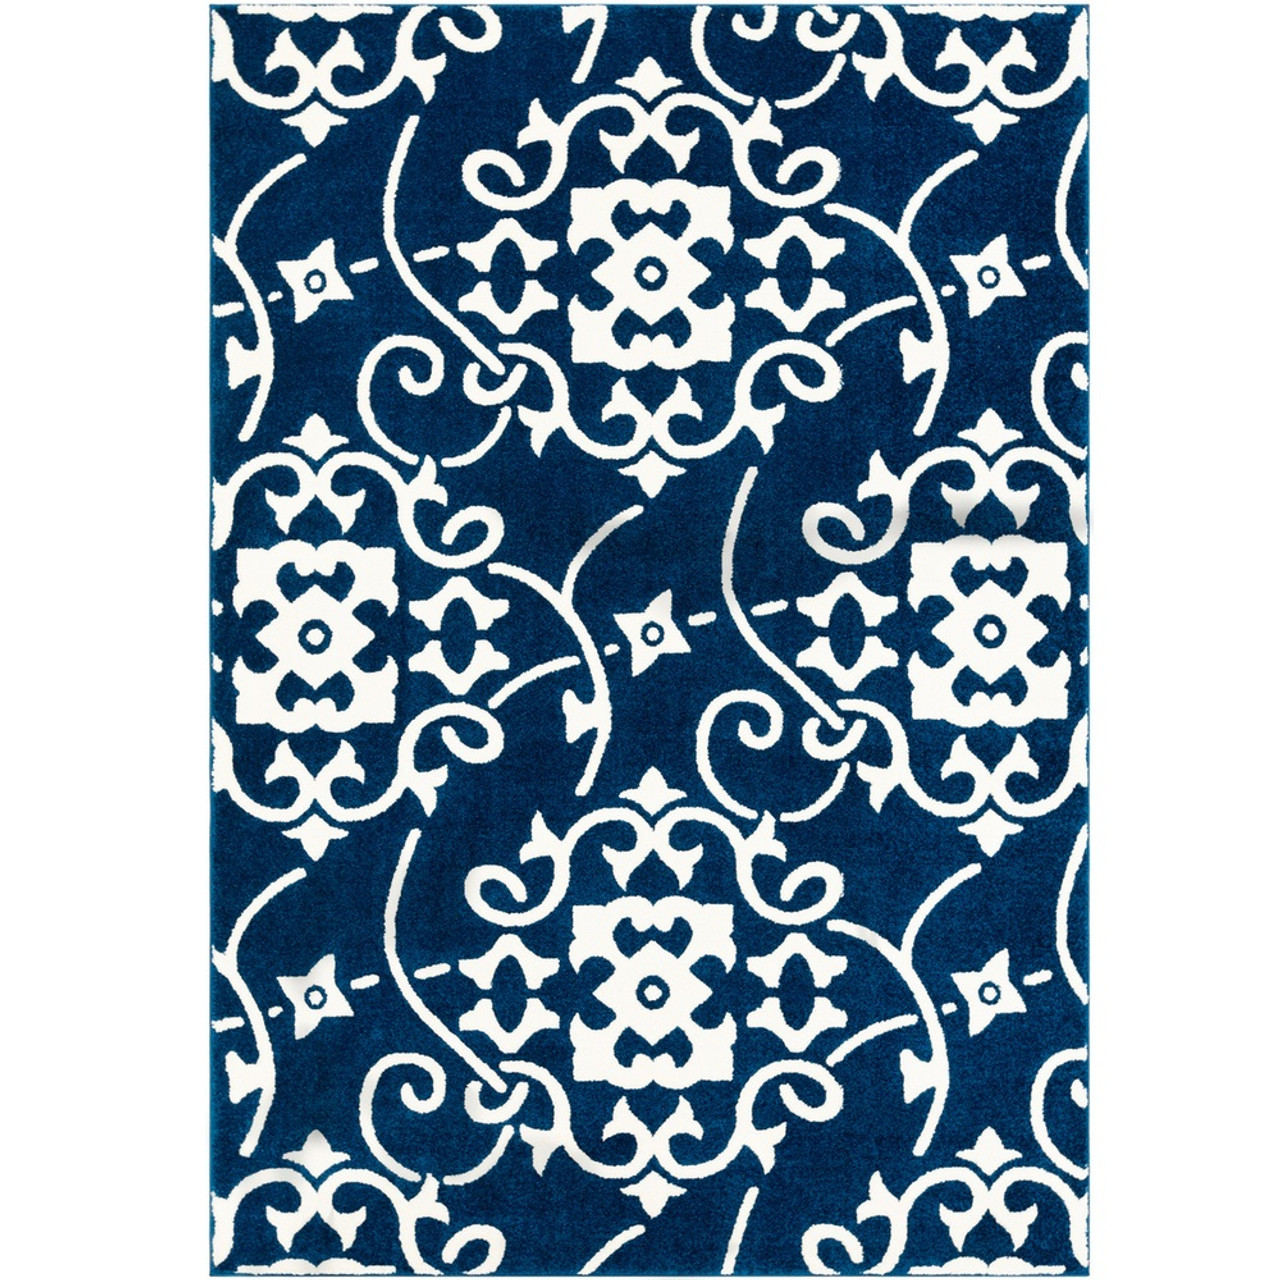 3 3 X 5 Tribal Design Navy Blue White Machine Woven Area Rug Christmas Central